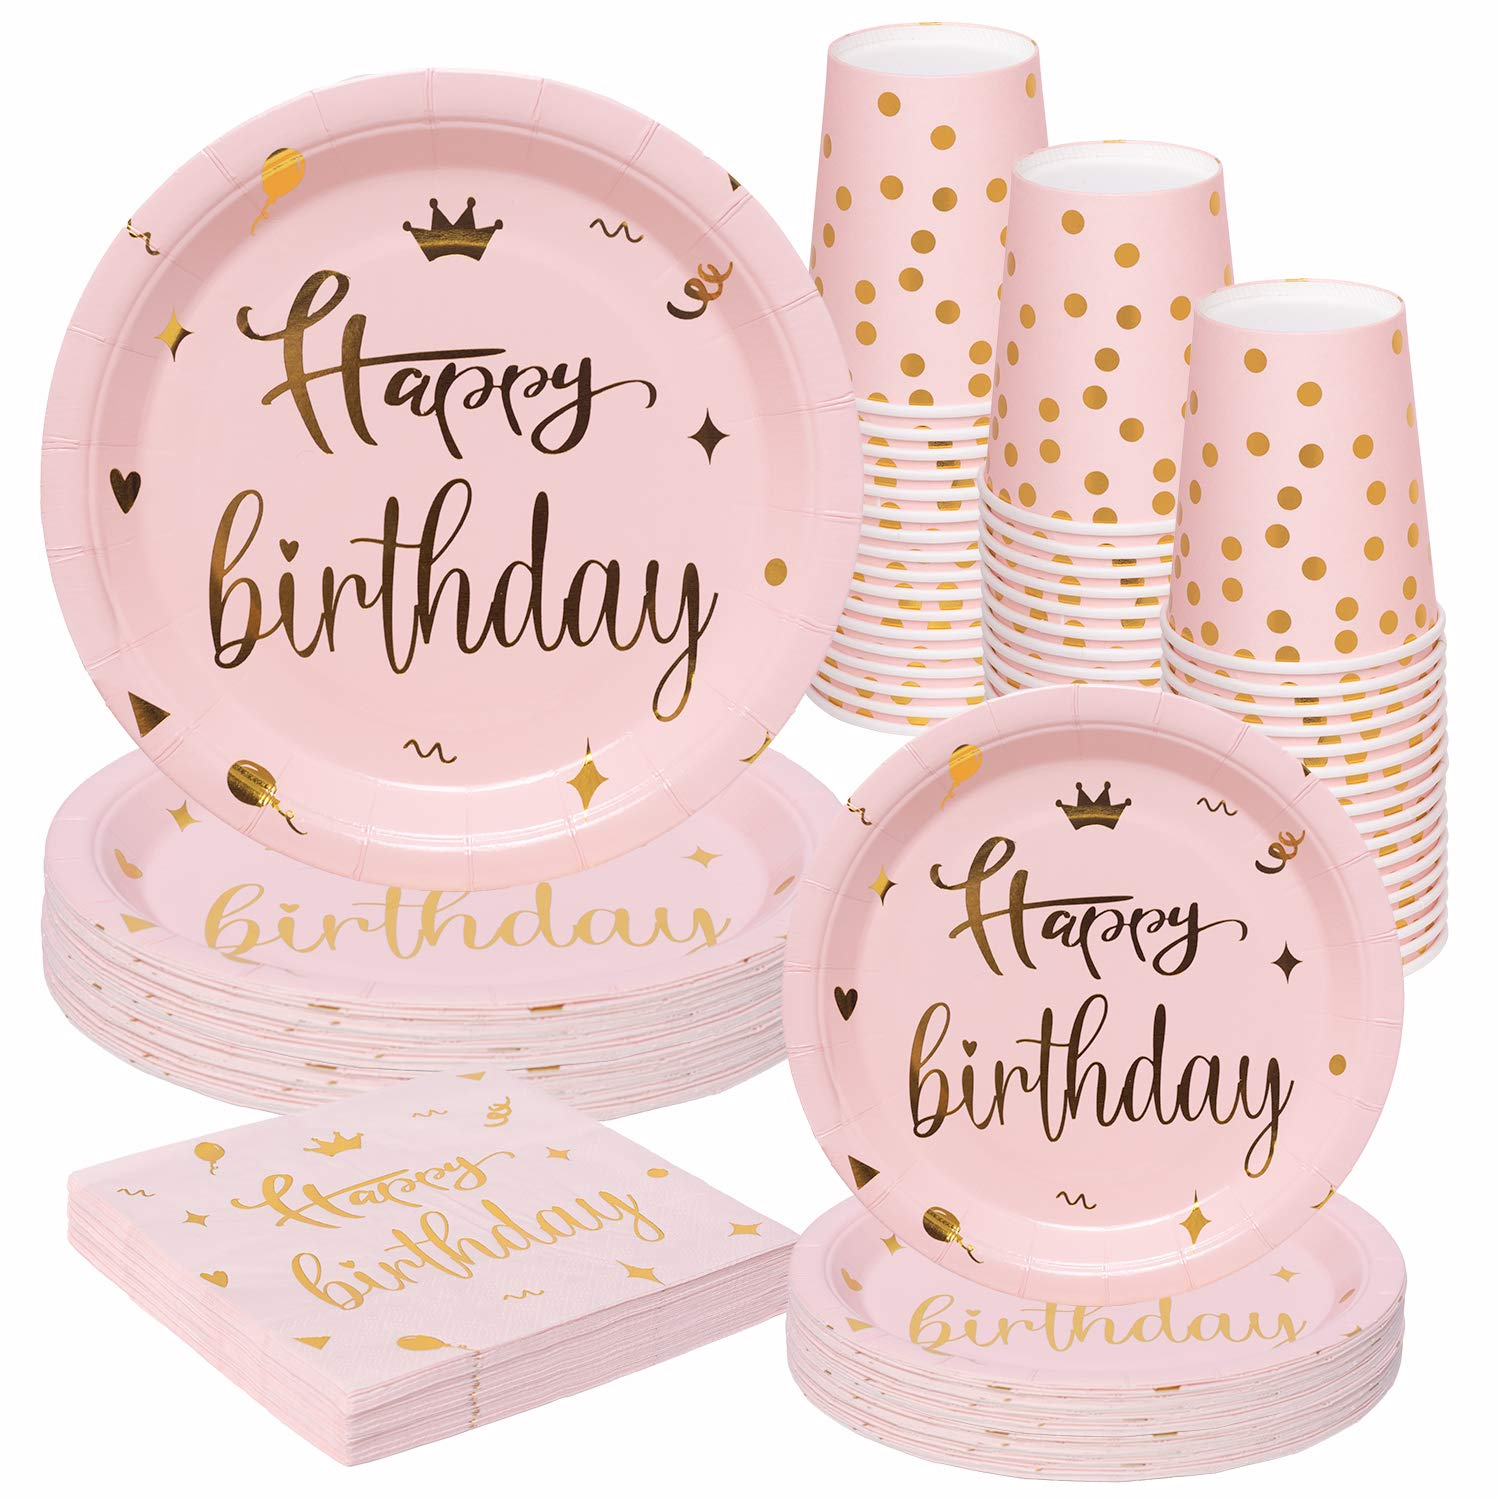 8 Pack Party Tableware Birthday Party Birthday Tableware 8 Pink Gold Happy Birthday Plates Pink Spotty and Stripy Party Plates